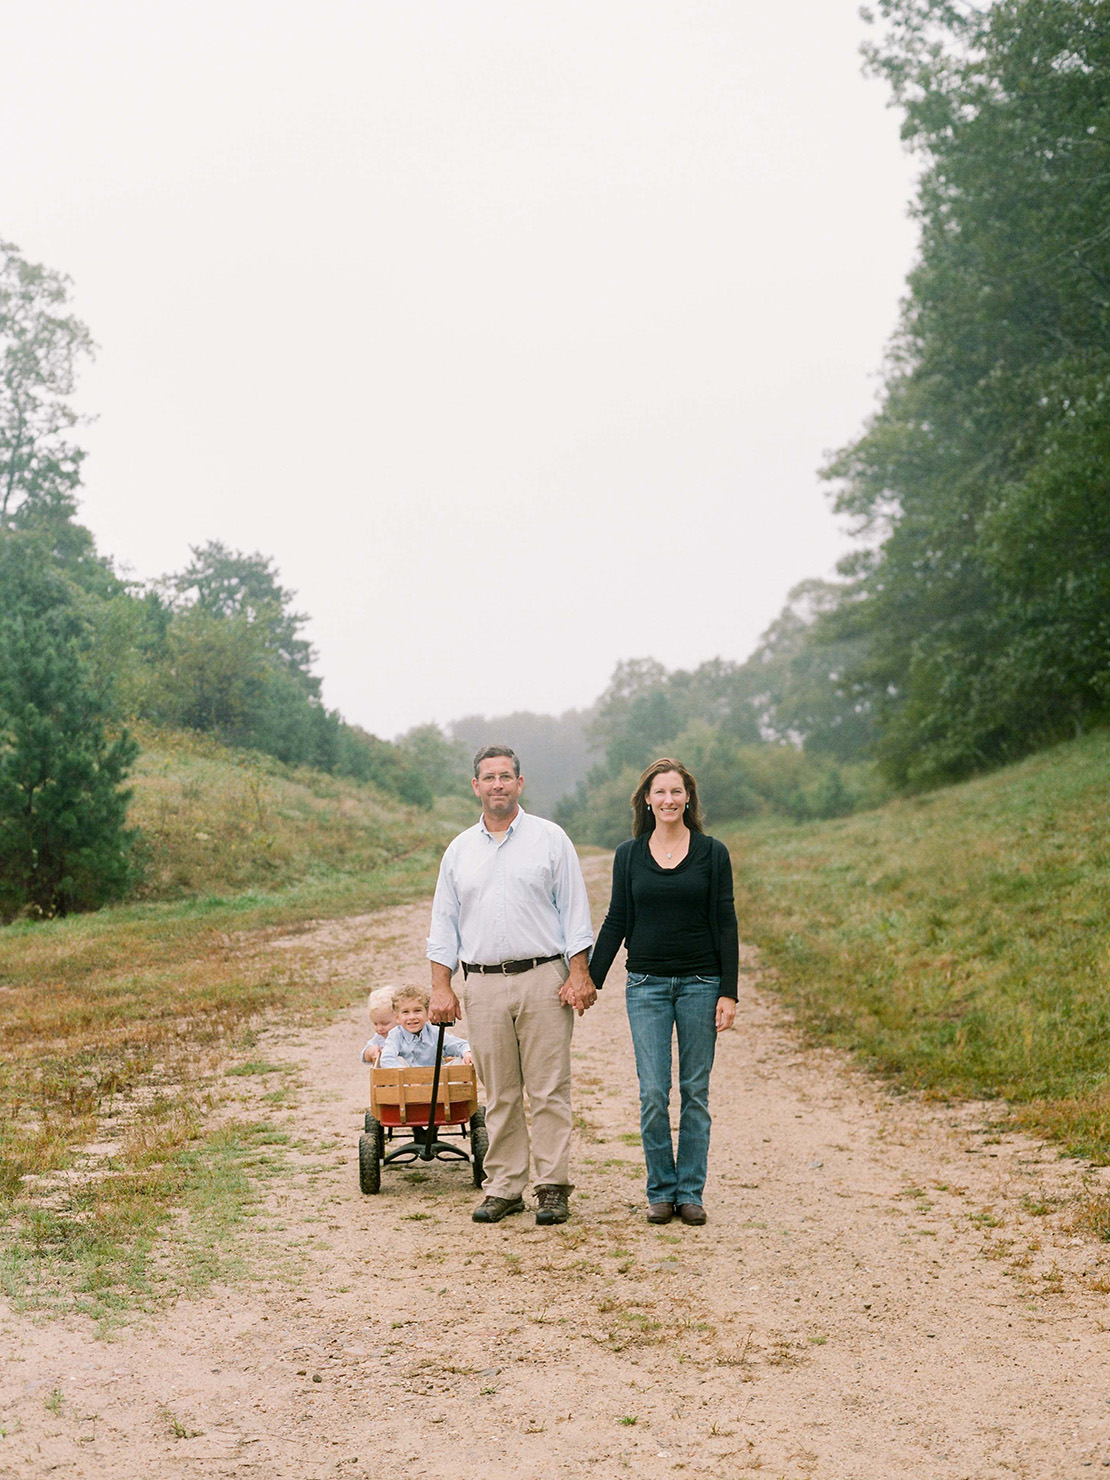 01_Cape_Cod_Family_portrait_Photographer_heidi_vail_cranberry_bogs_misty